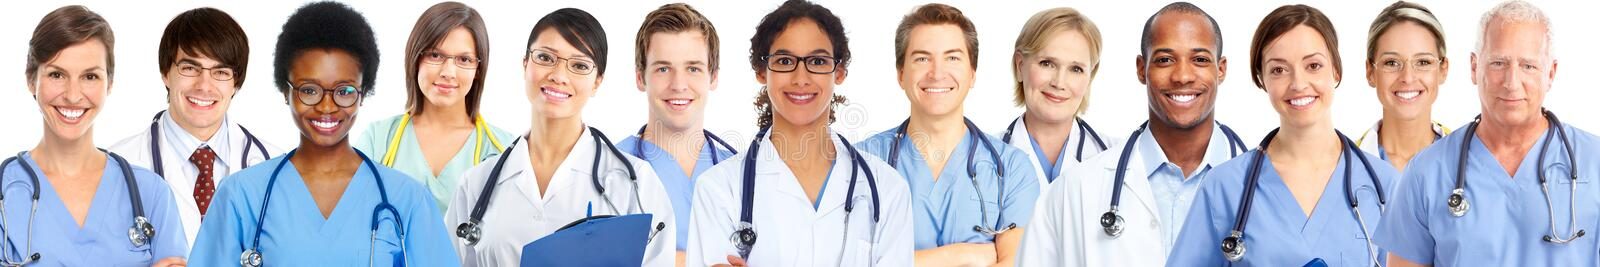 Group of medical doctors. Health care banner background royalty free stock photos